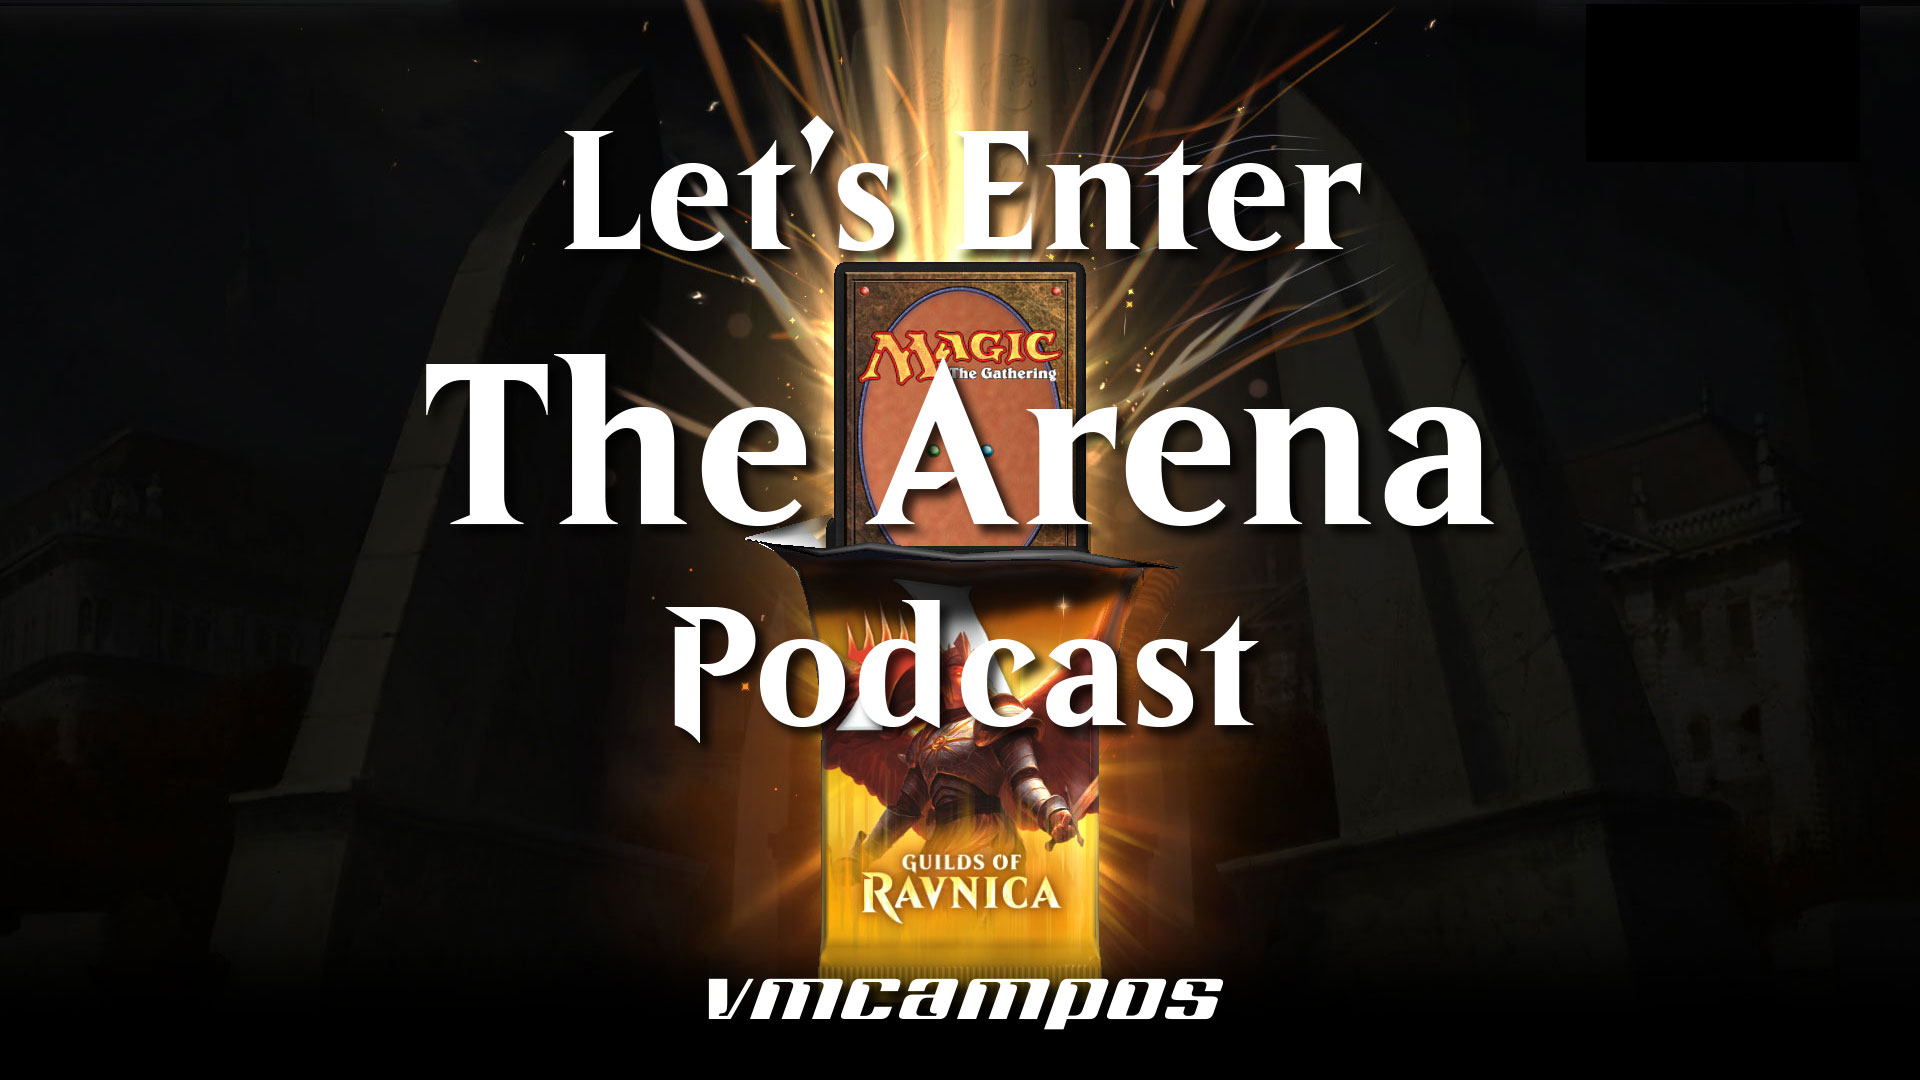 Let's Enter the Arena